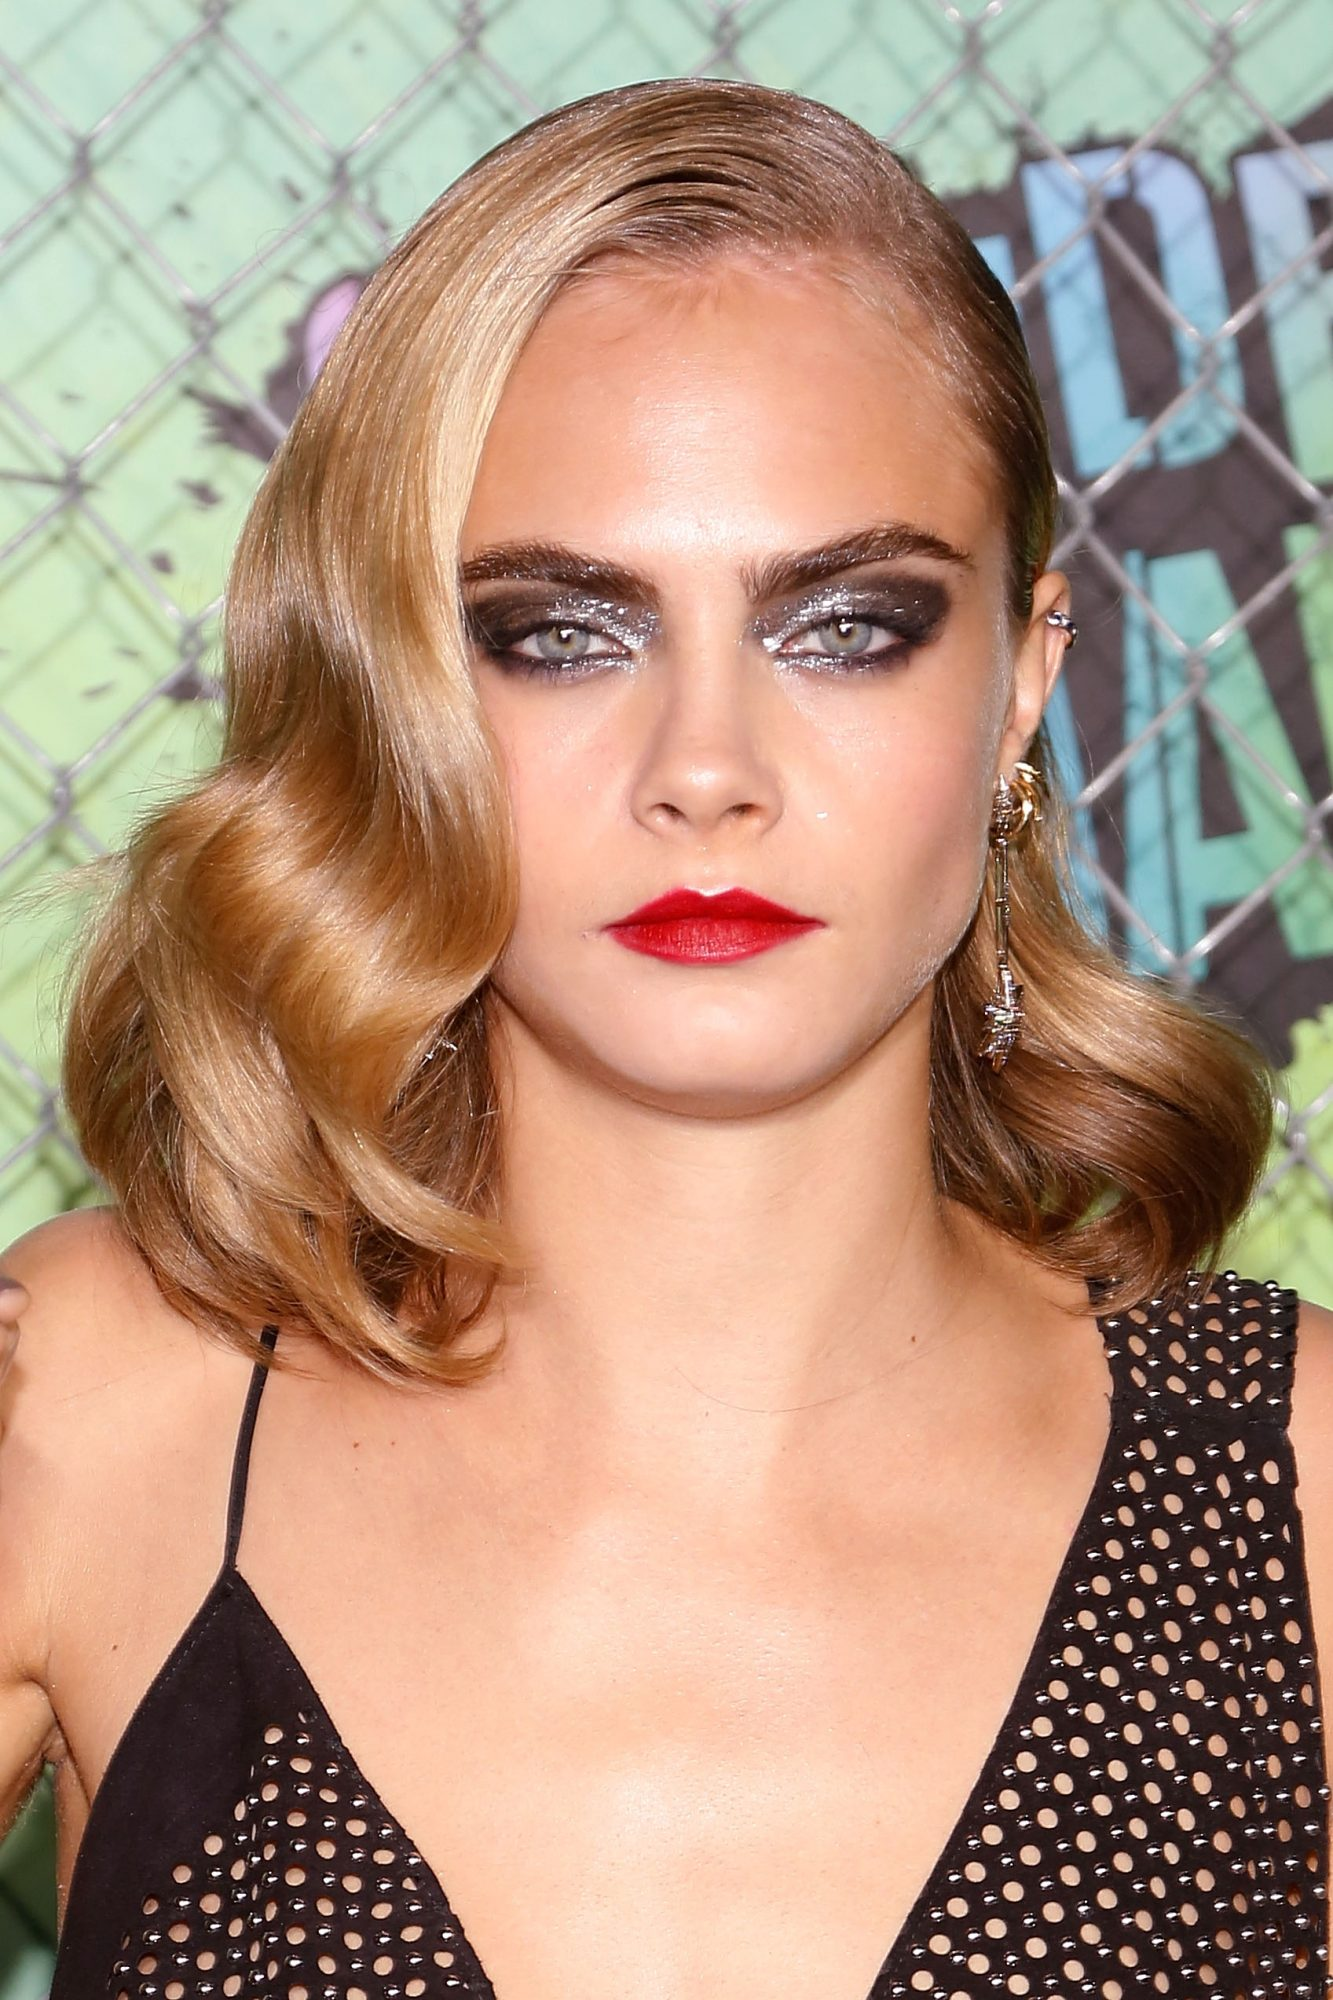 NEW YORK, NY - AUGUST 01:  Cara Delevingne attends the world premiere of